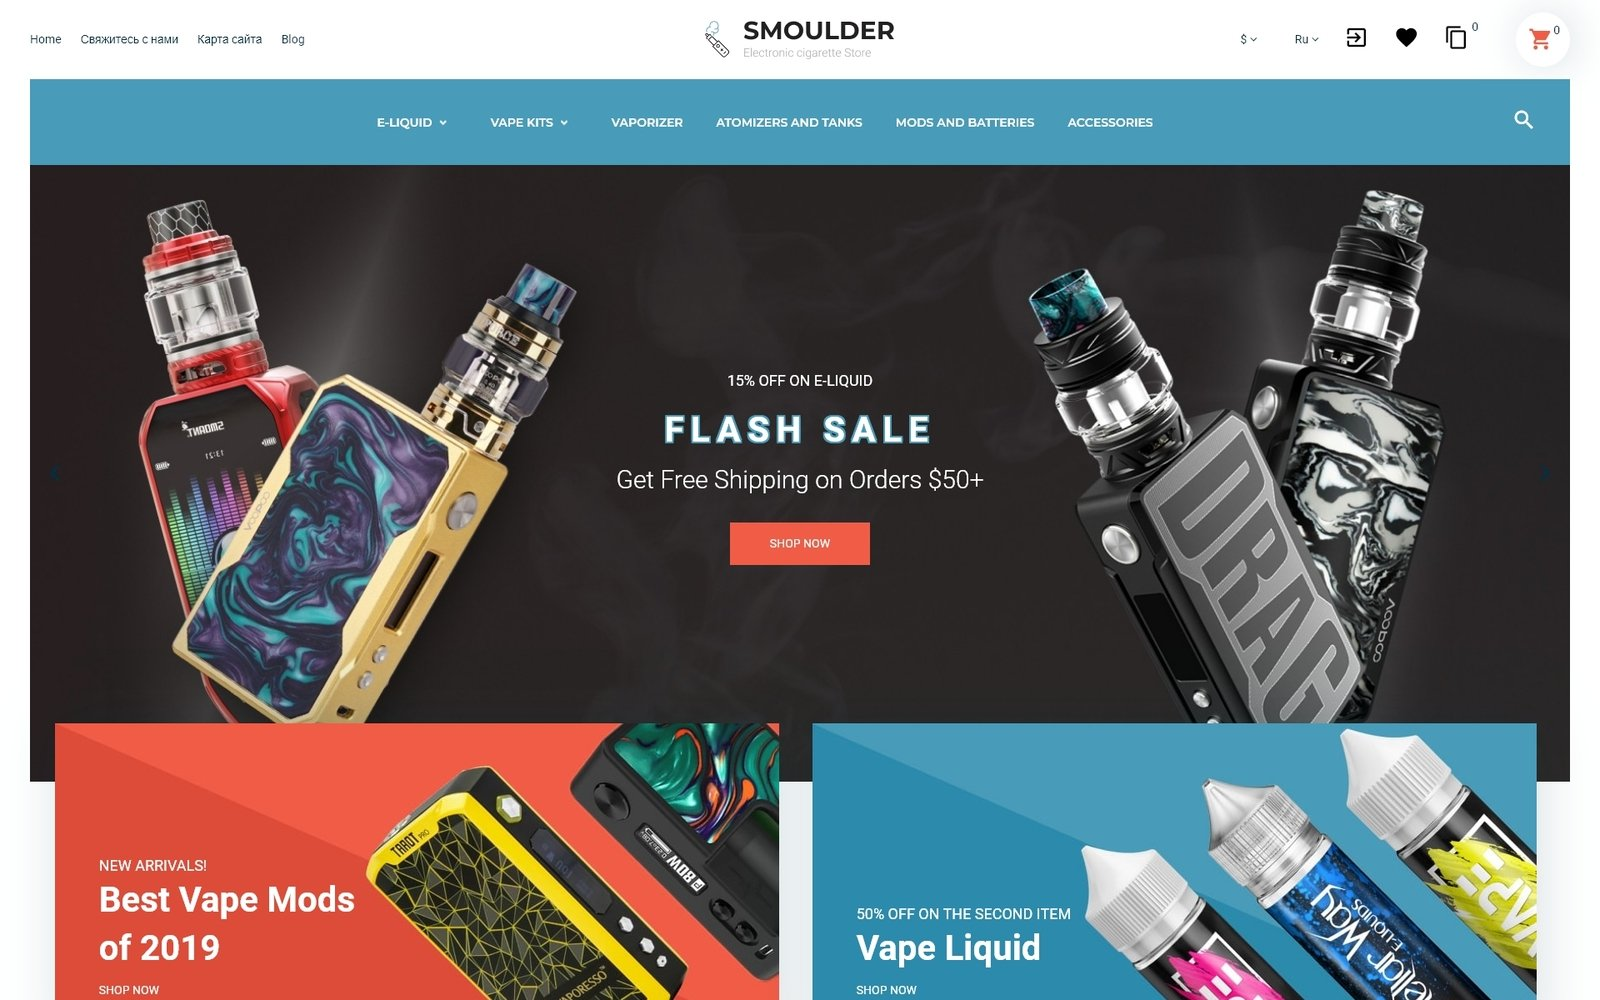 """Smoulder - E-cigarette Website Design"" 响应式PrestaShop模板 #92990"